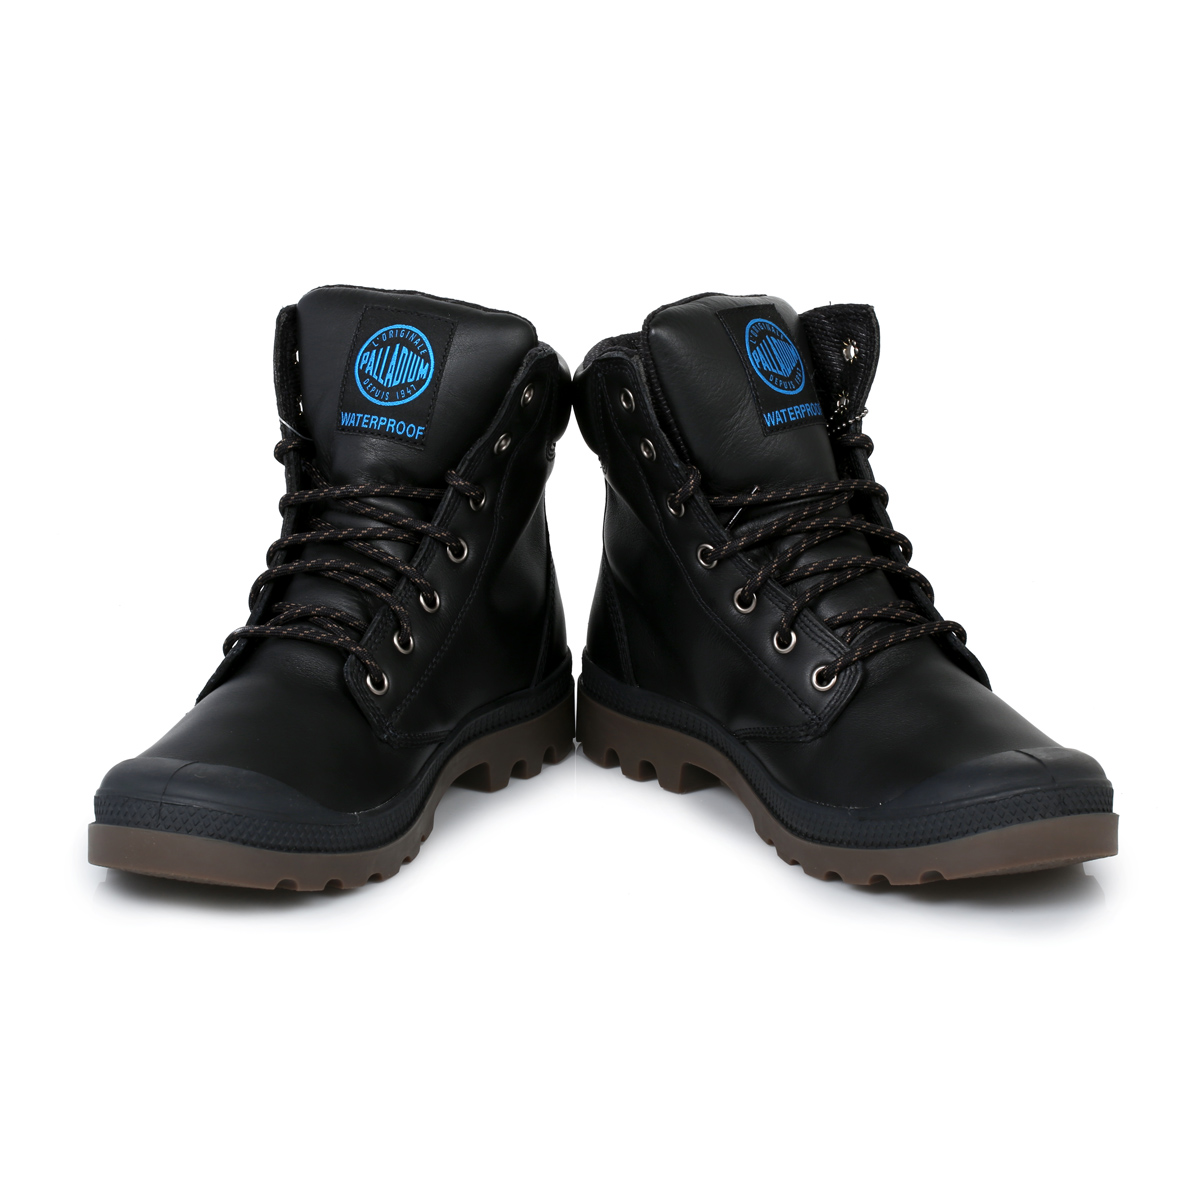 Lastest Palladium Palladium Duo Chrome Women Canvas Black Boot Boots